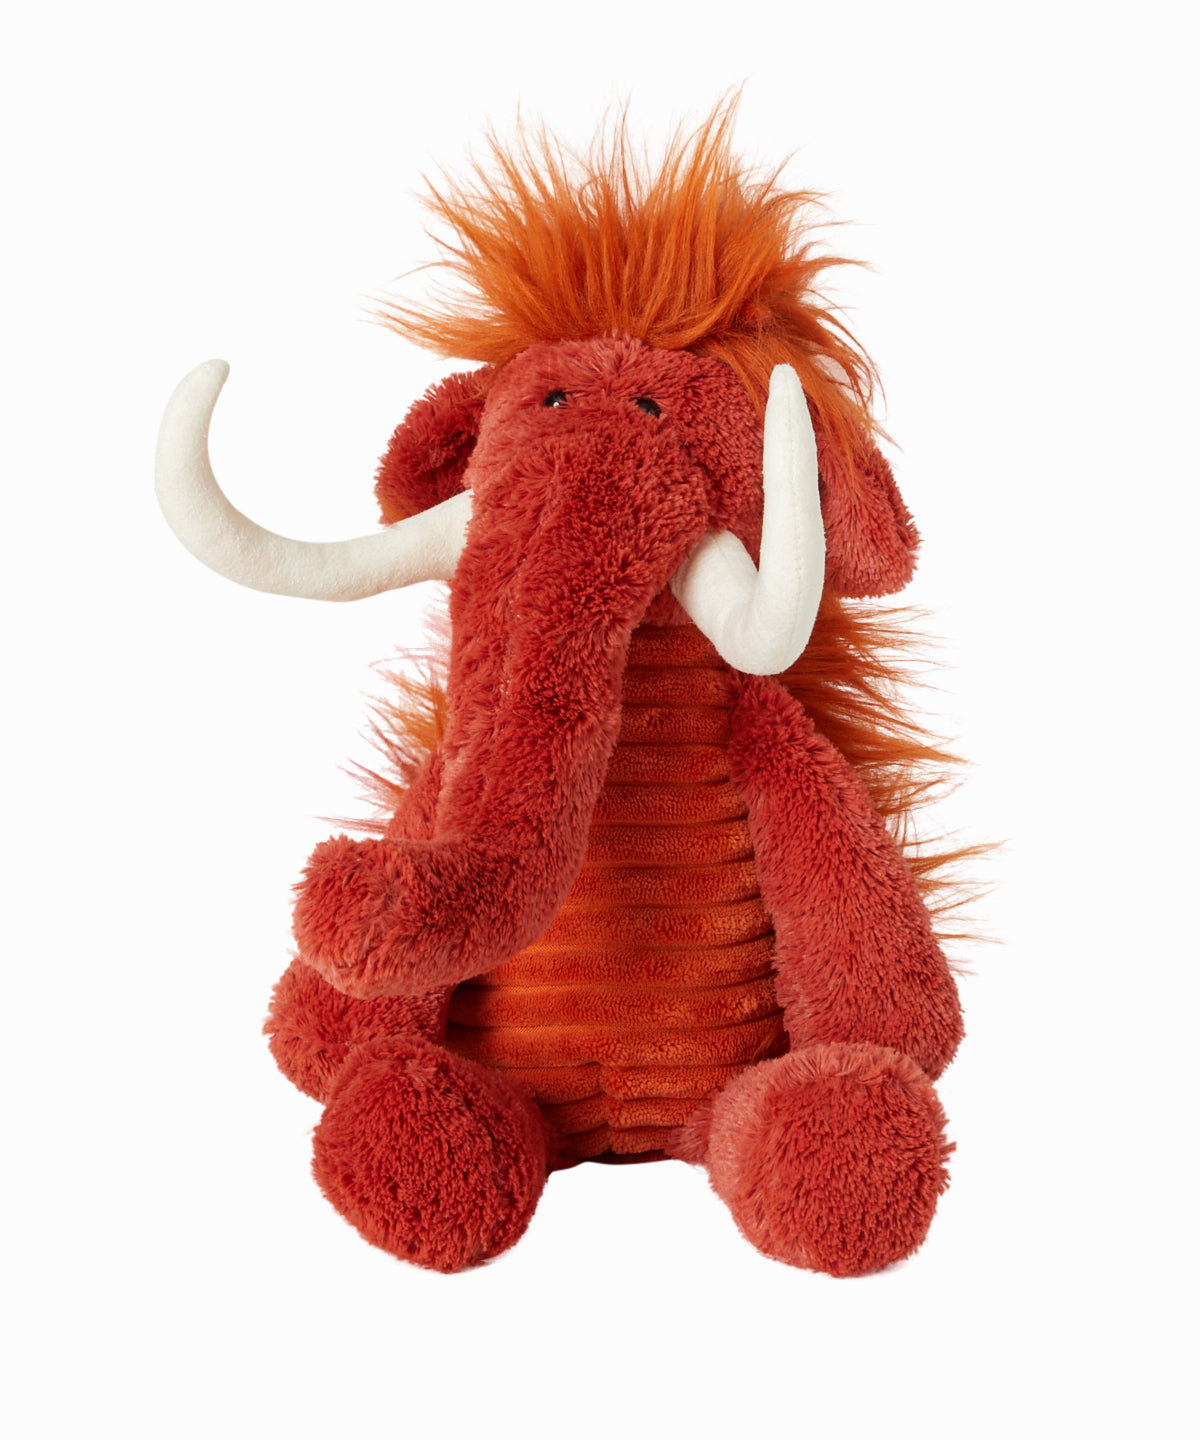 Winston Wooly Mammoth Stuffed Animal